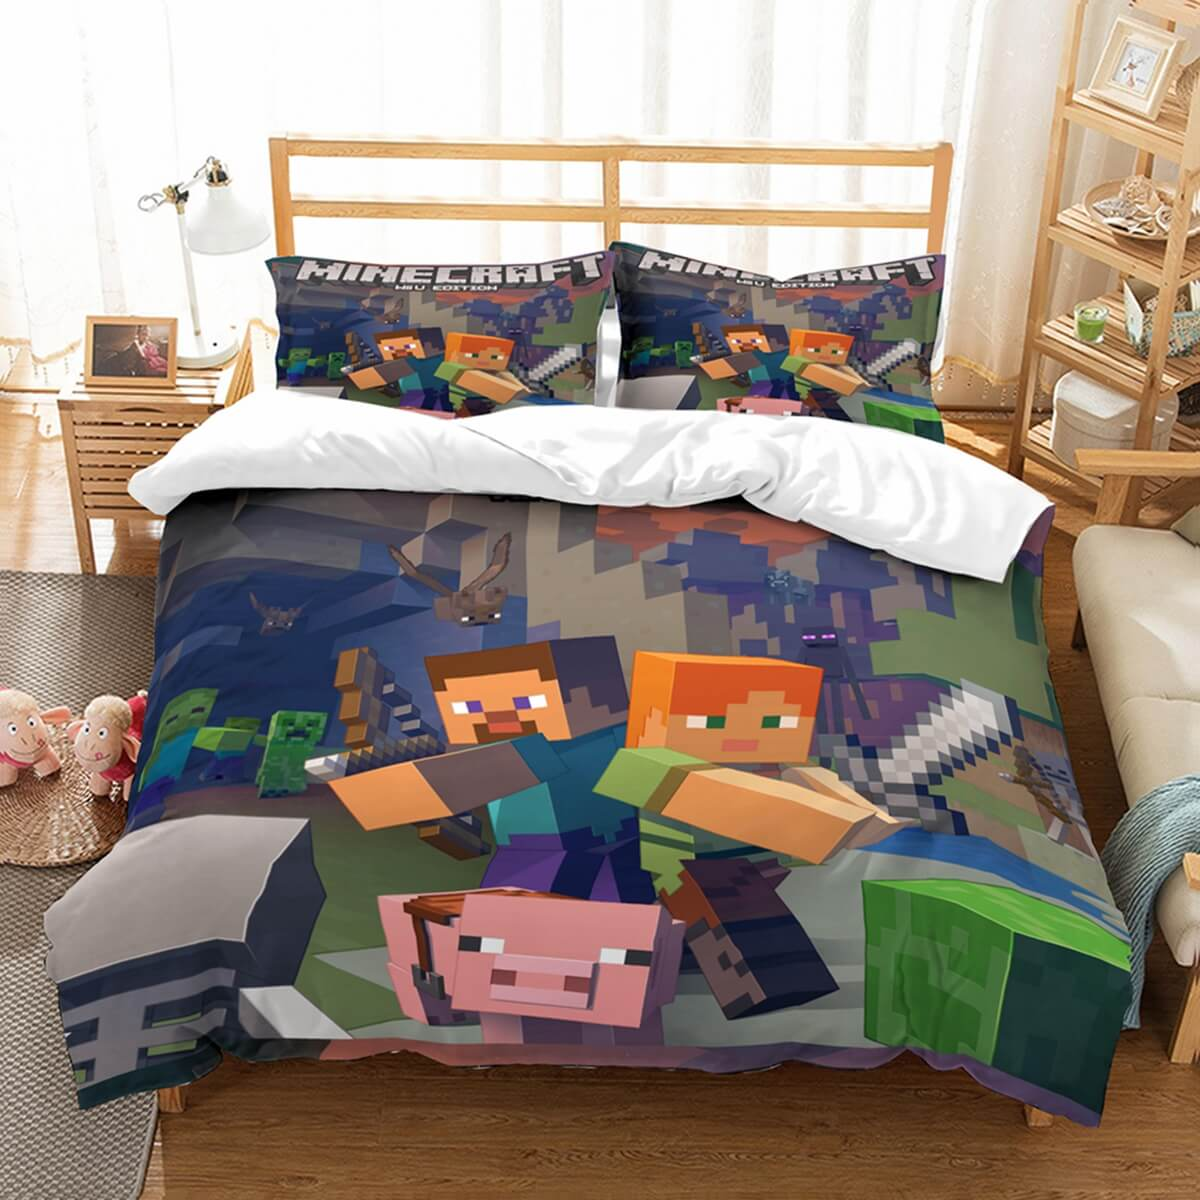 3D Customize Minecraft Bedding Set Duvet Cover Set Bedroom Set Bedlinen